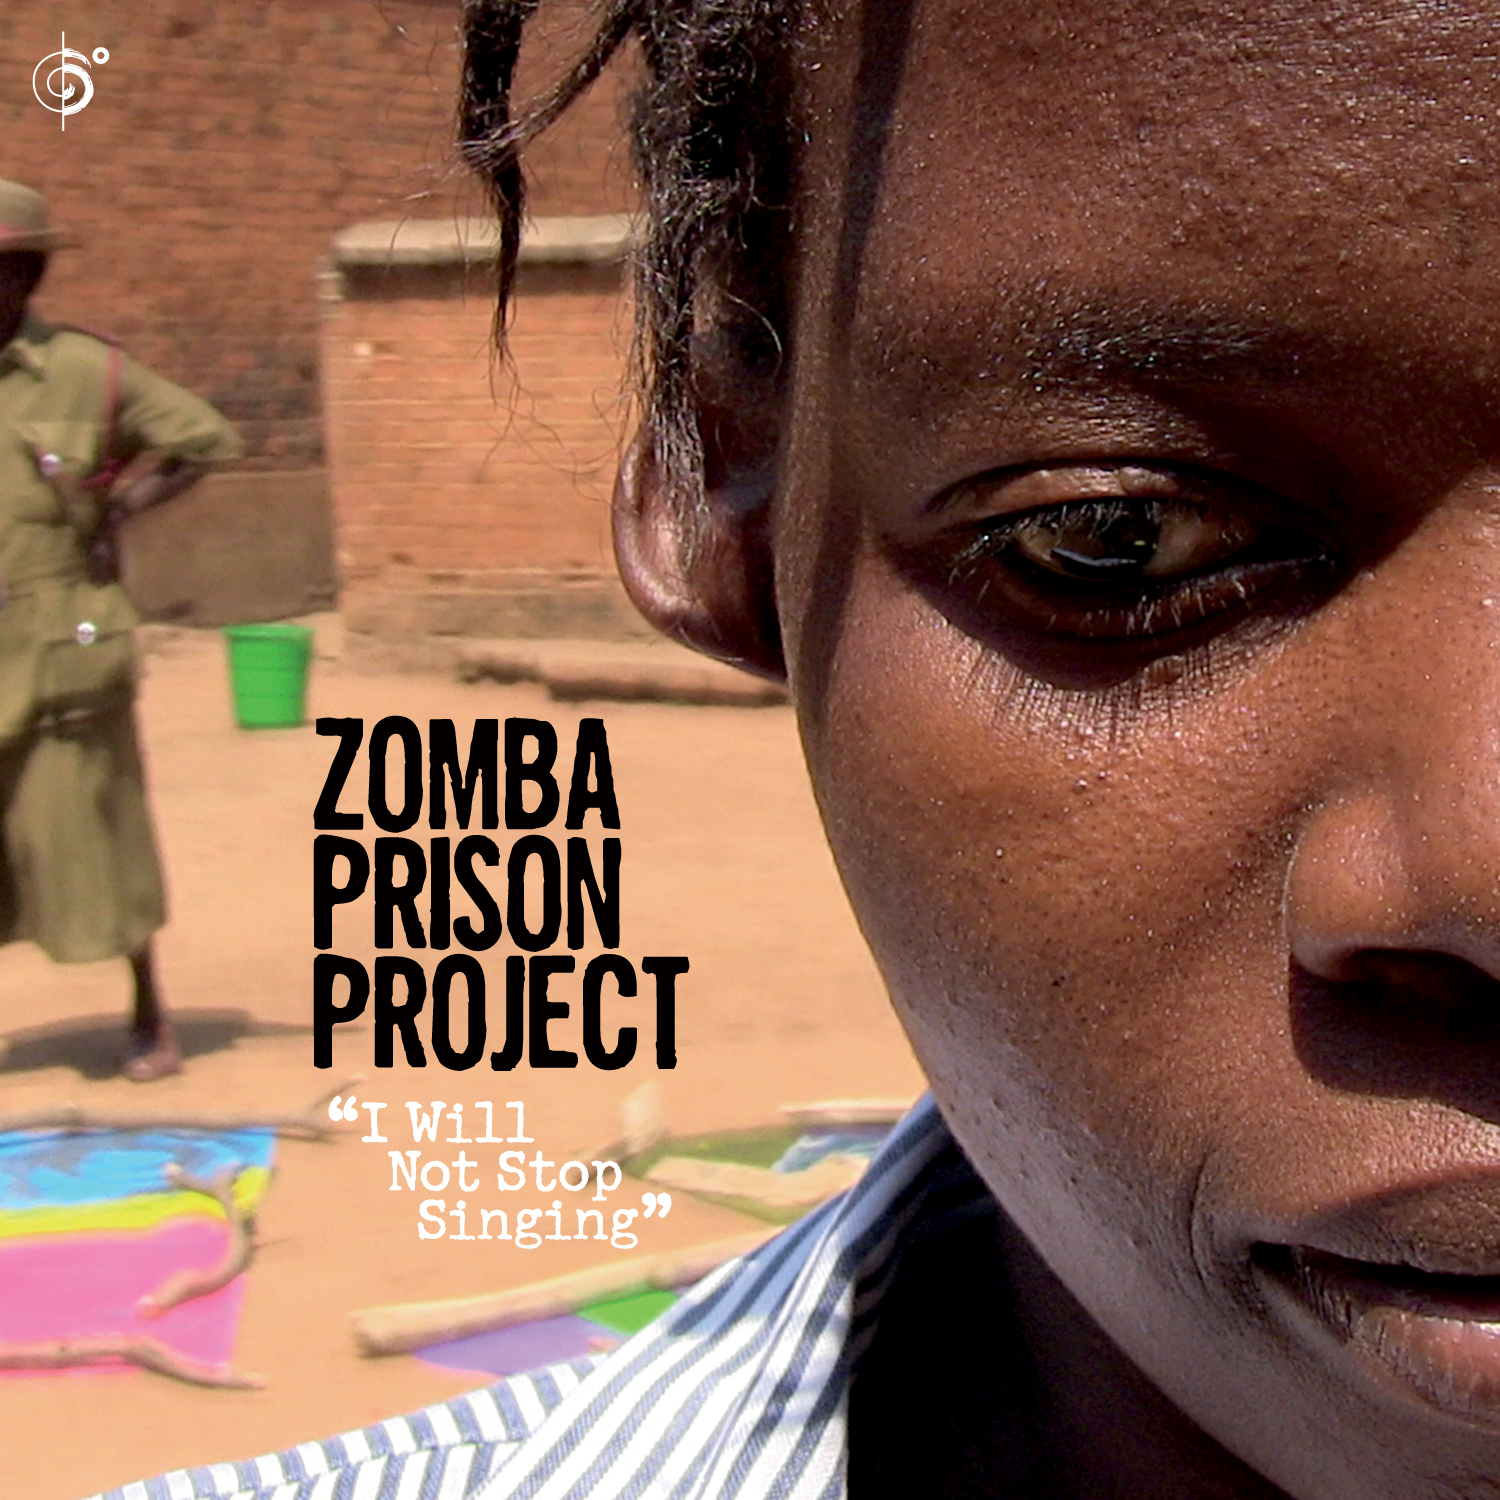 Zomba Prison Project – I will not stop singing